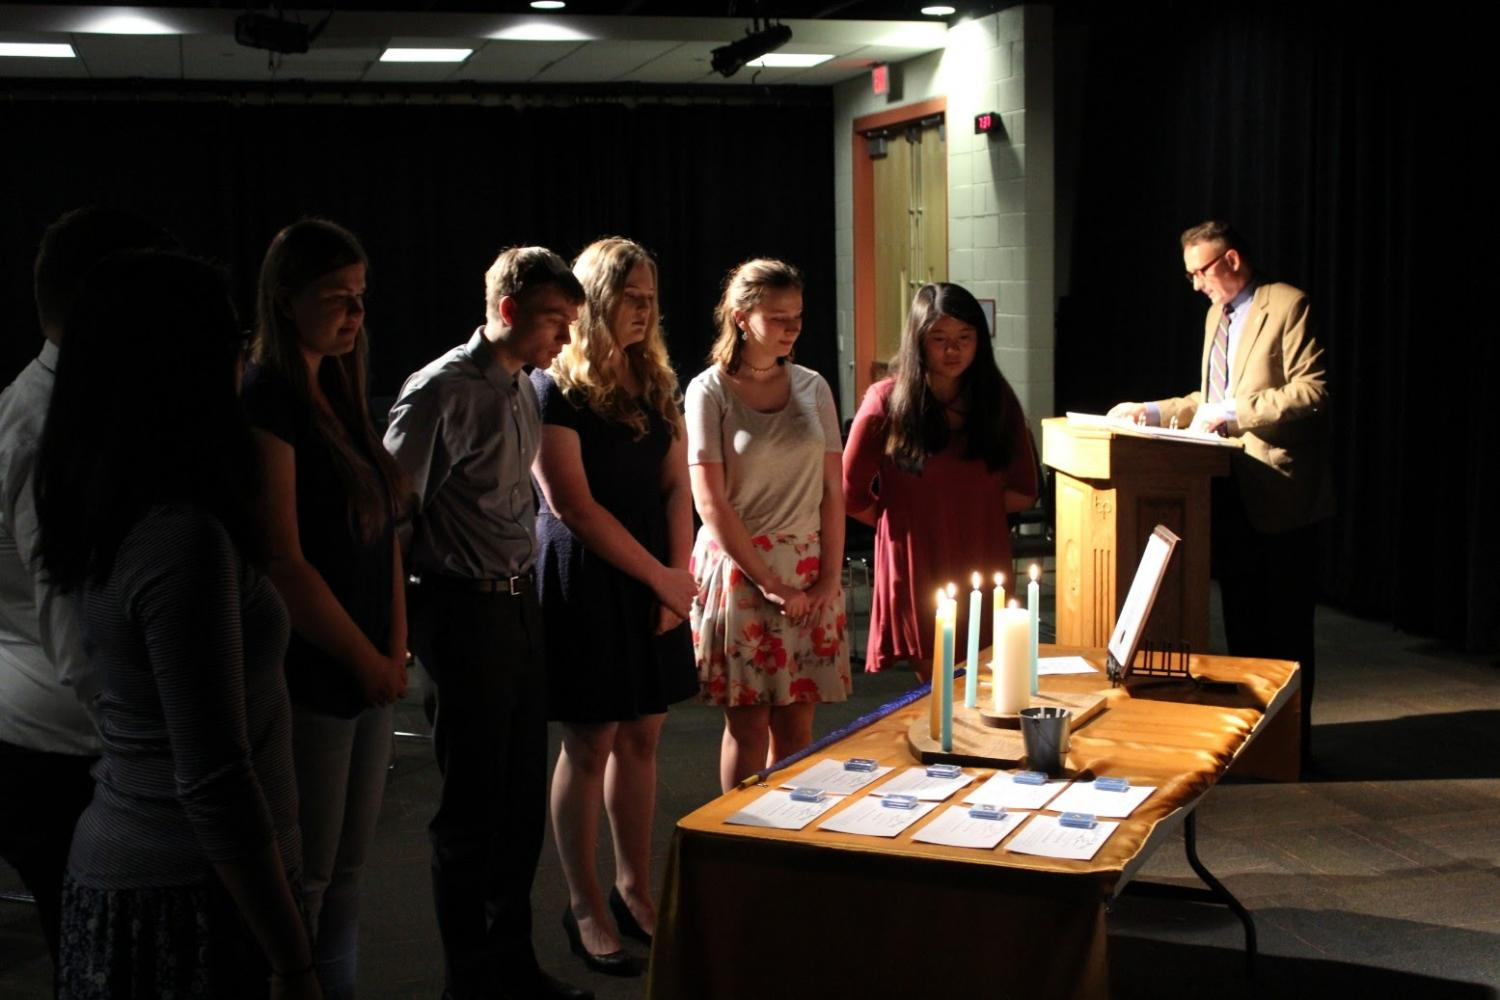 Eight students recognized for their work in journalism